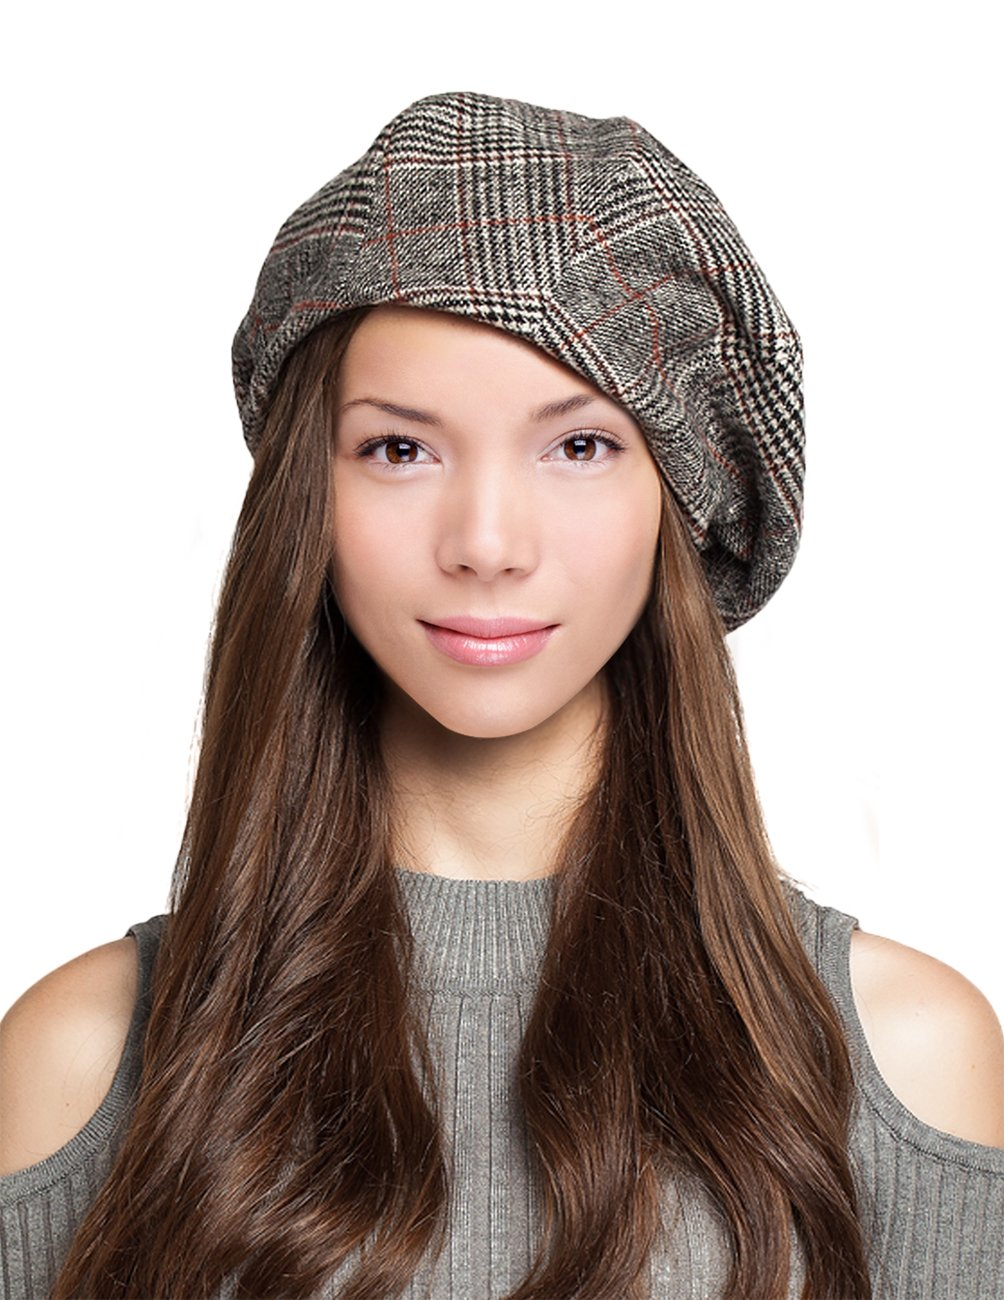 Dahlia Women's Velvet Lined Wool Blend Beret Bow Decorated Painter Plaid - Black